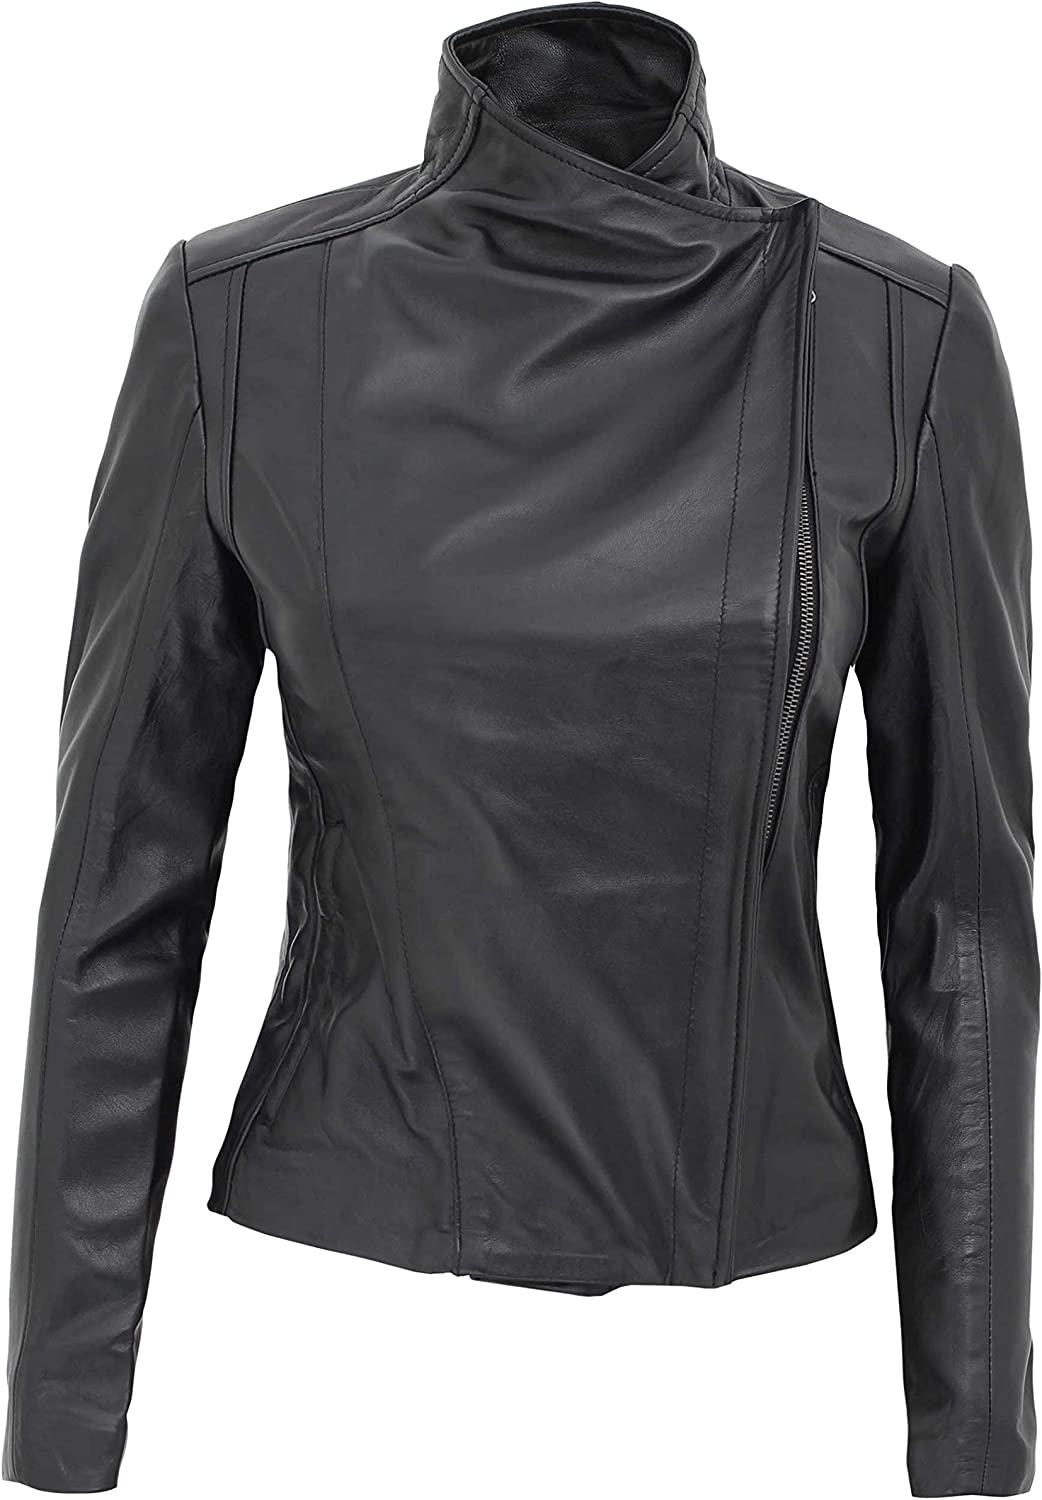 Fjackets Womens Motorcycle Leather Jackets - Real Lambskin Soft Leather Jakets for Women